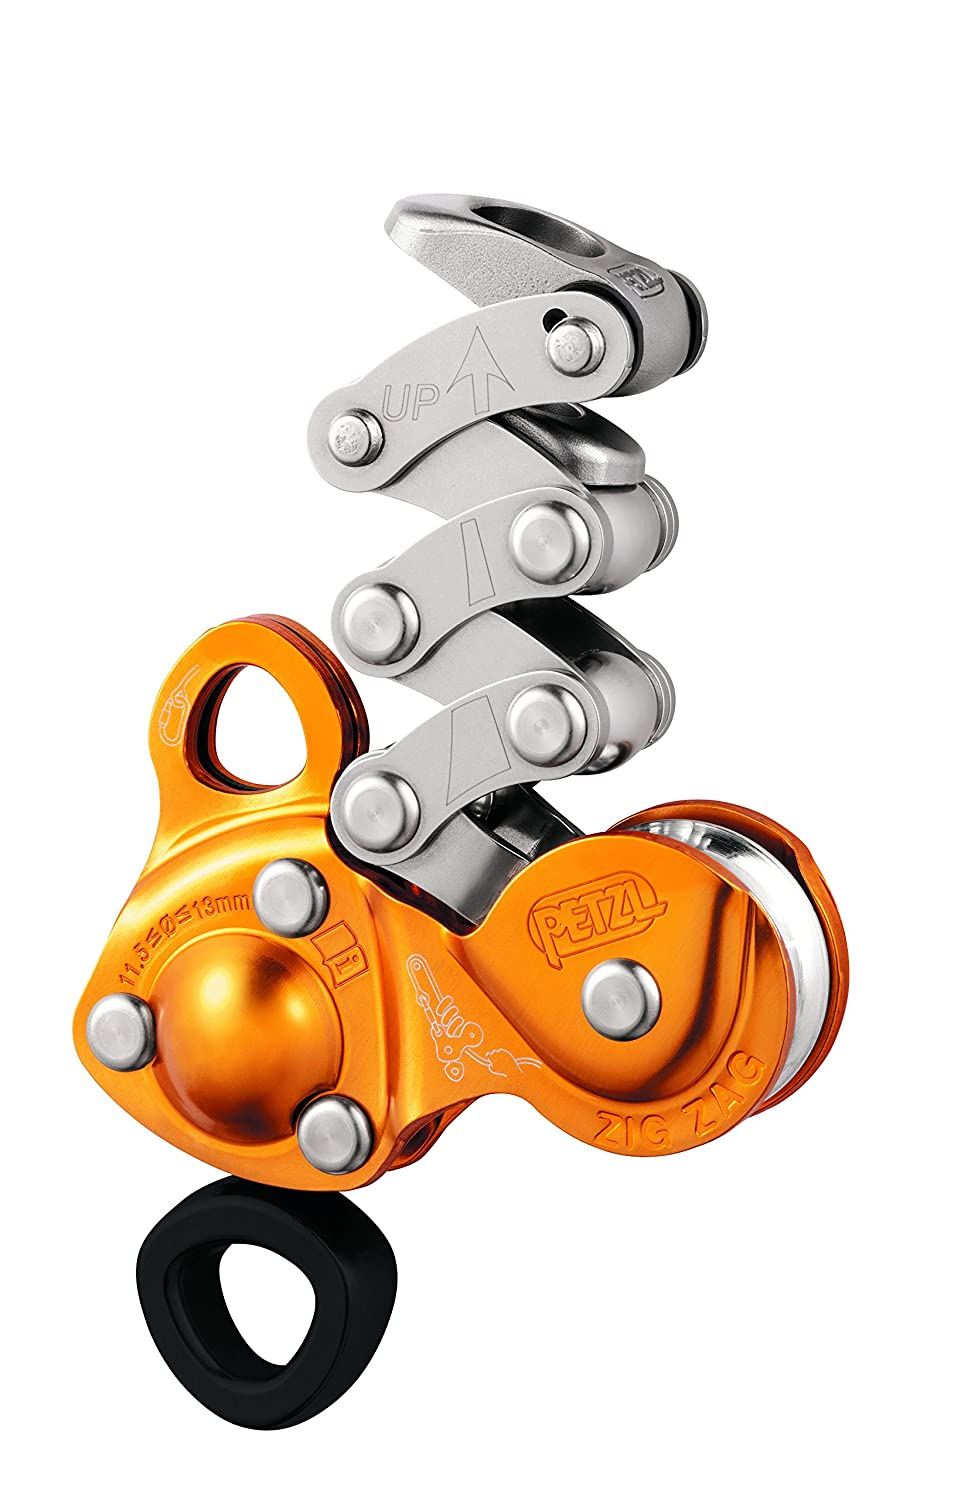 Mechanical Prusik for Tree Care D22A PETZL Zigzag